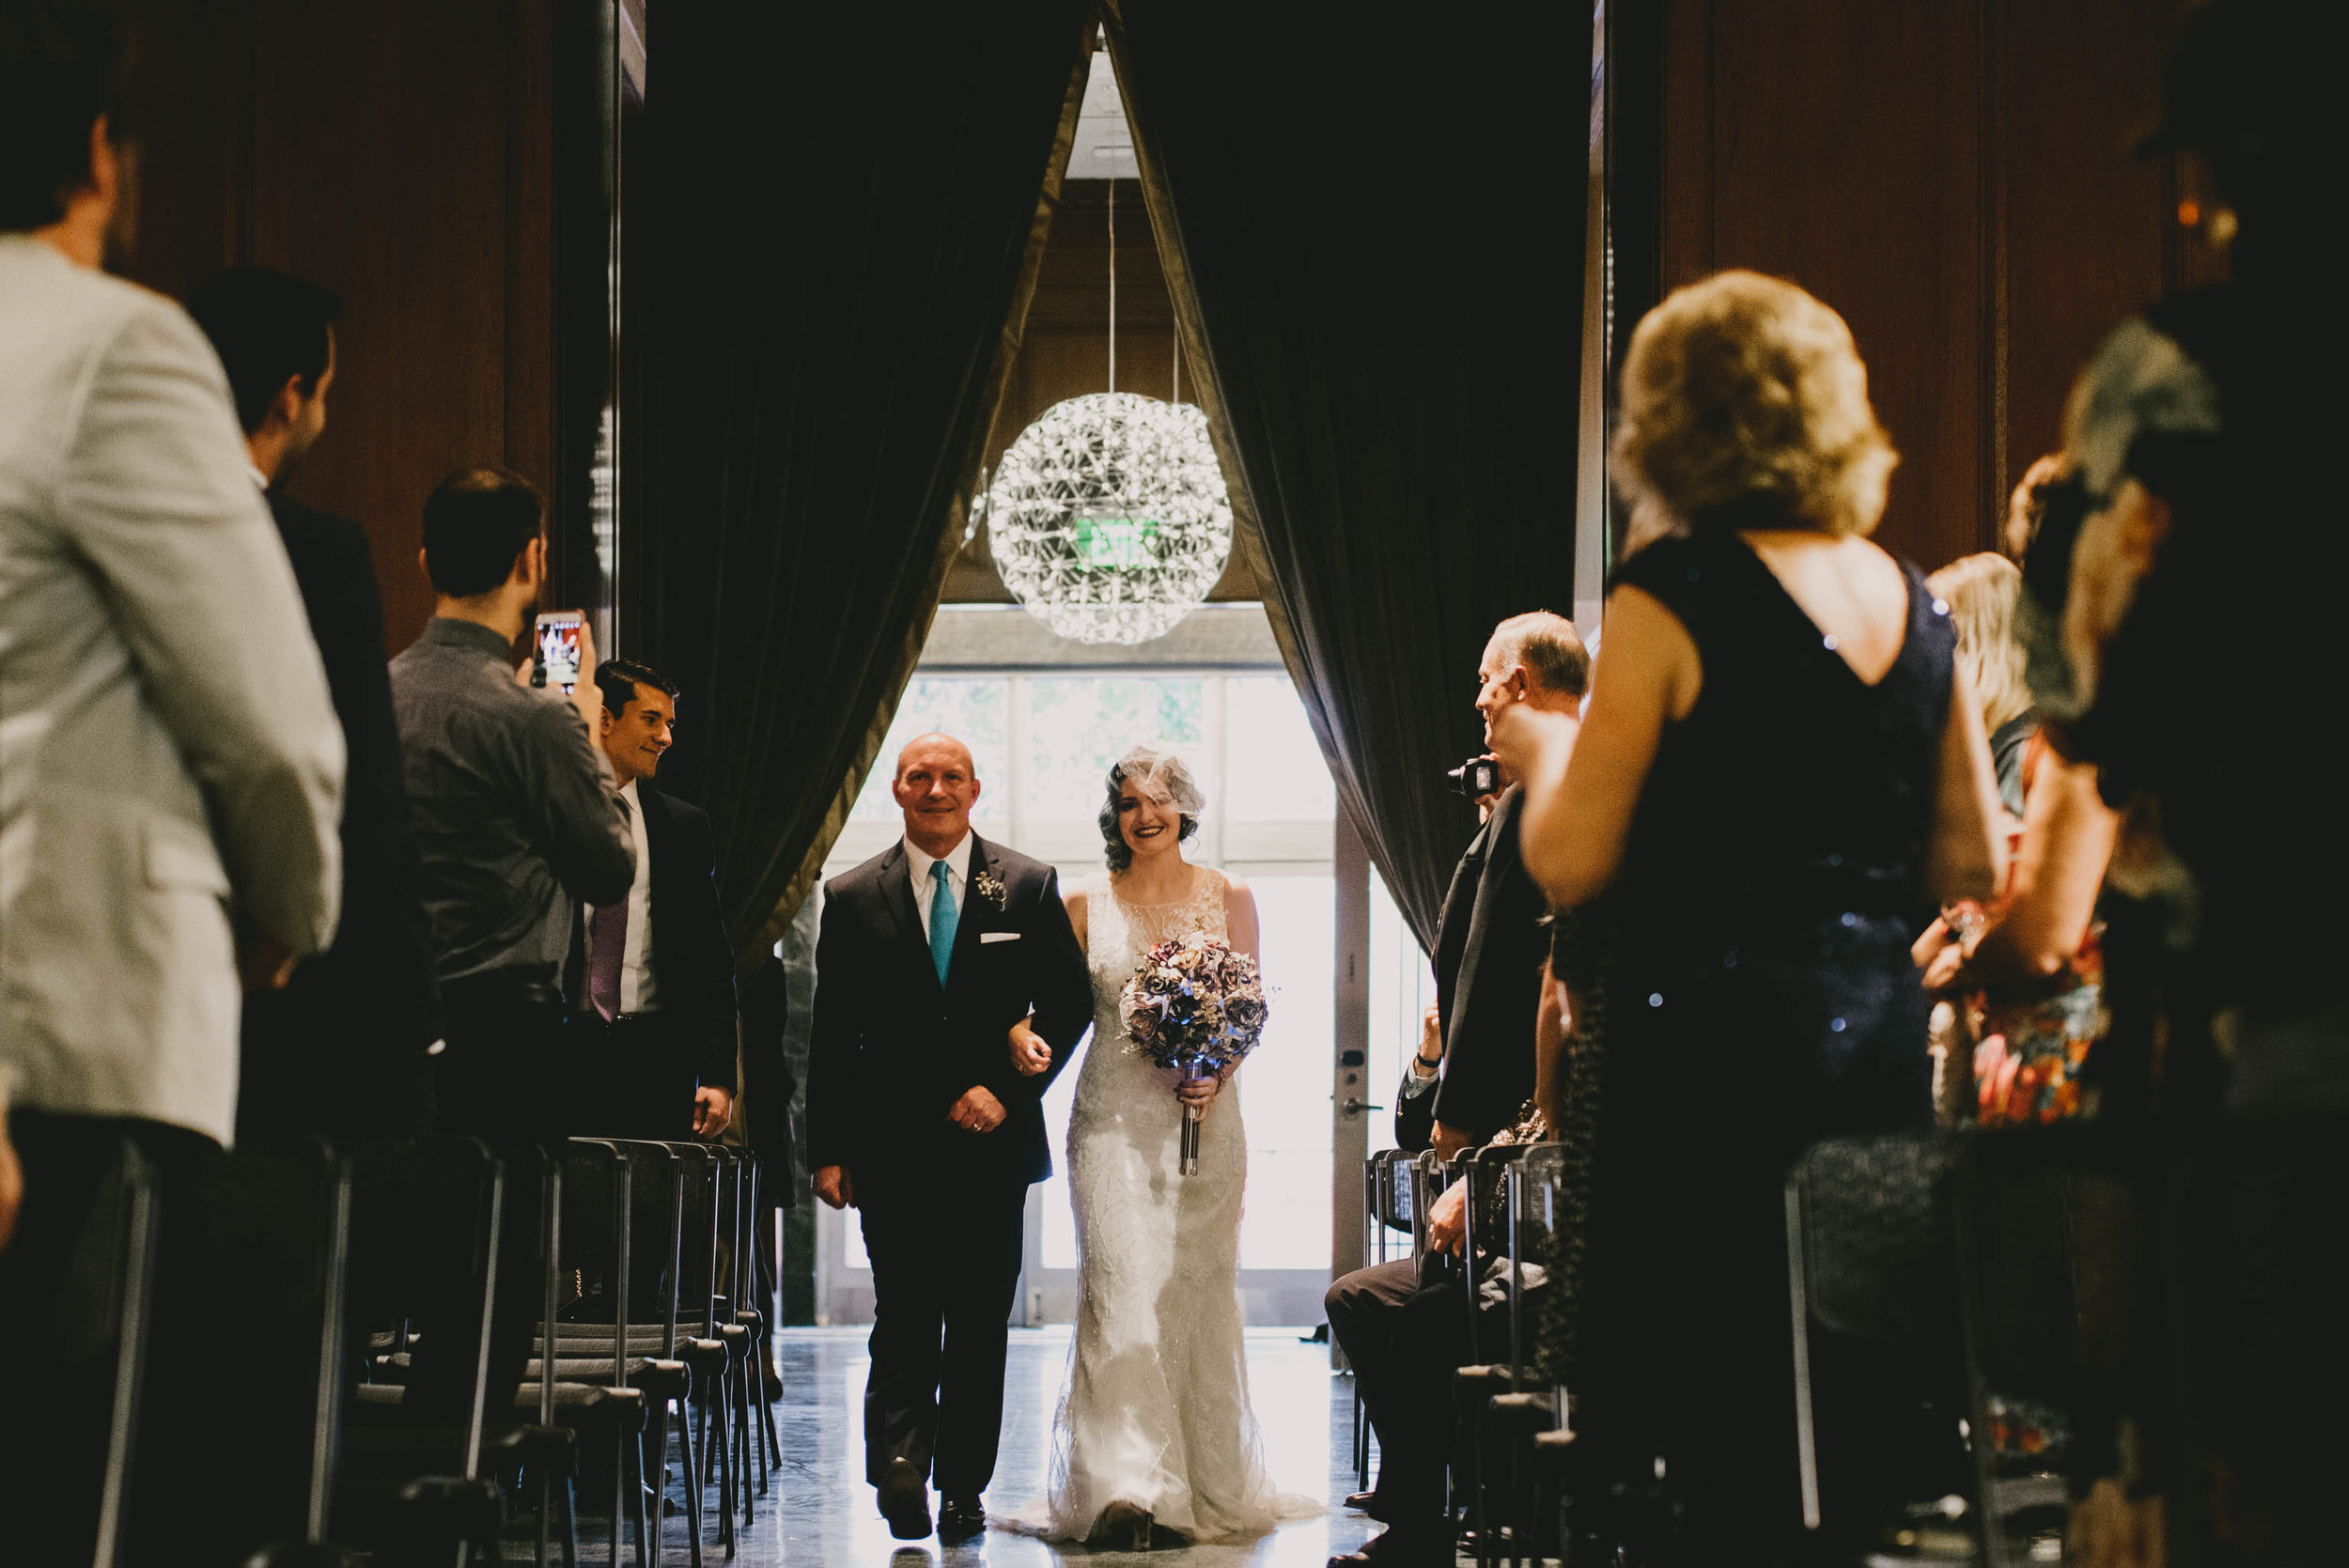 21c-hotel-durham-offbeat-wedding-ceremony-bride-and-father.jpg